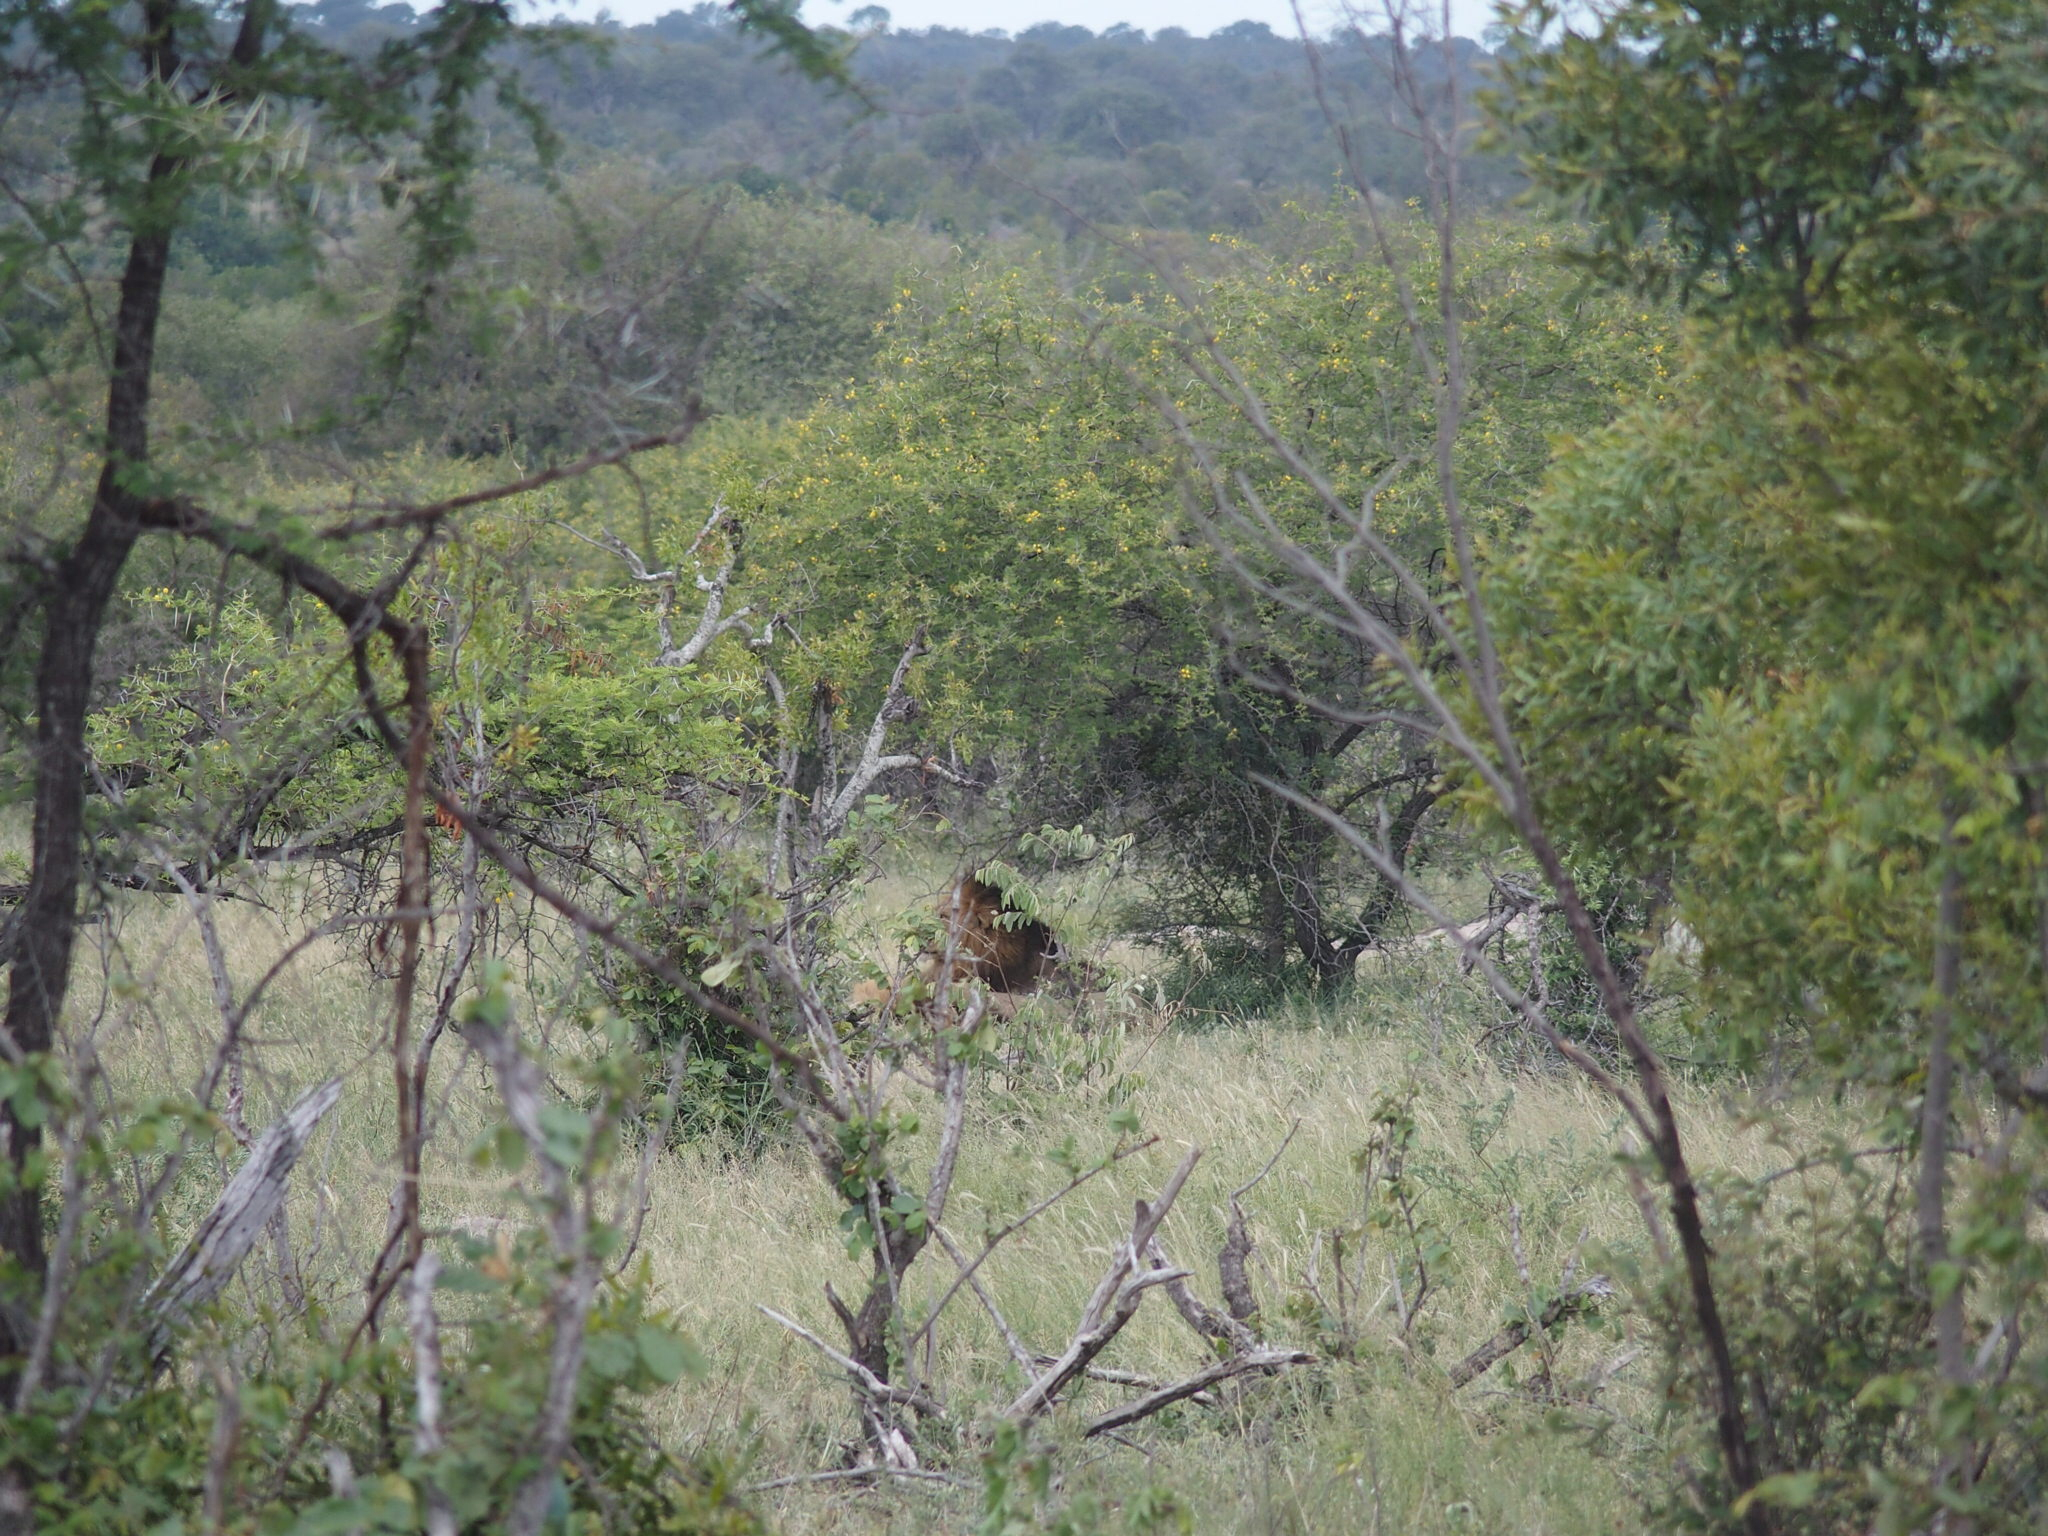 That dark fluff is a lion. We were desperate for a lion sighting, so we paid someone to stage that one (not really).